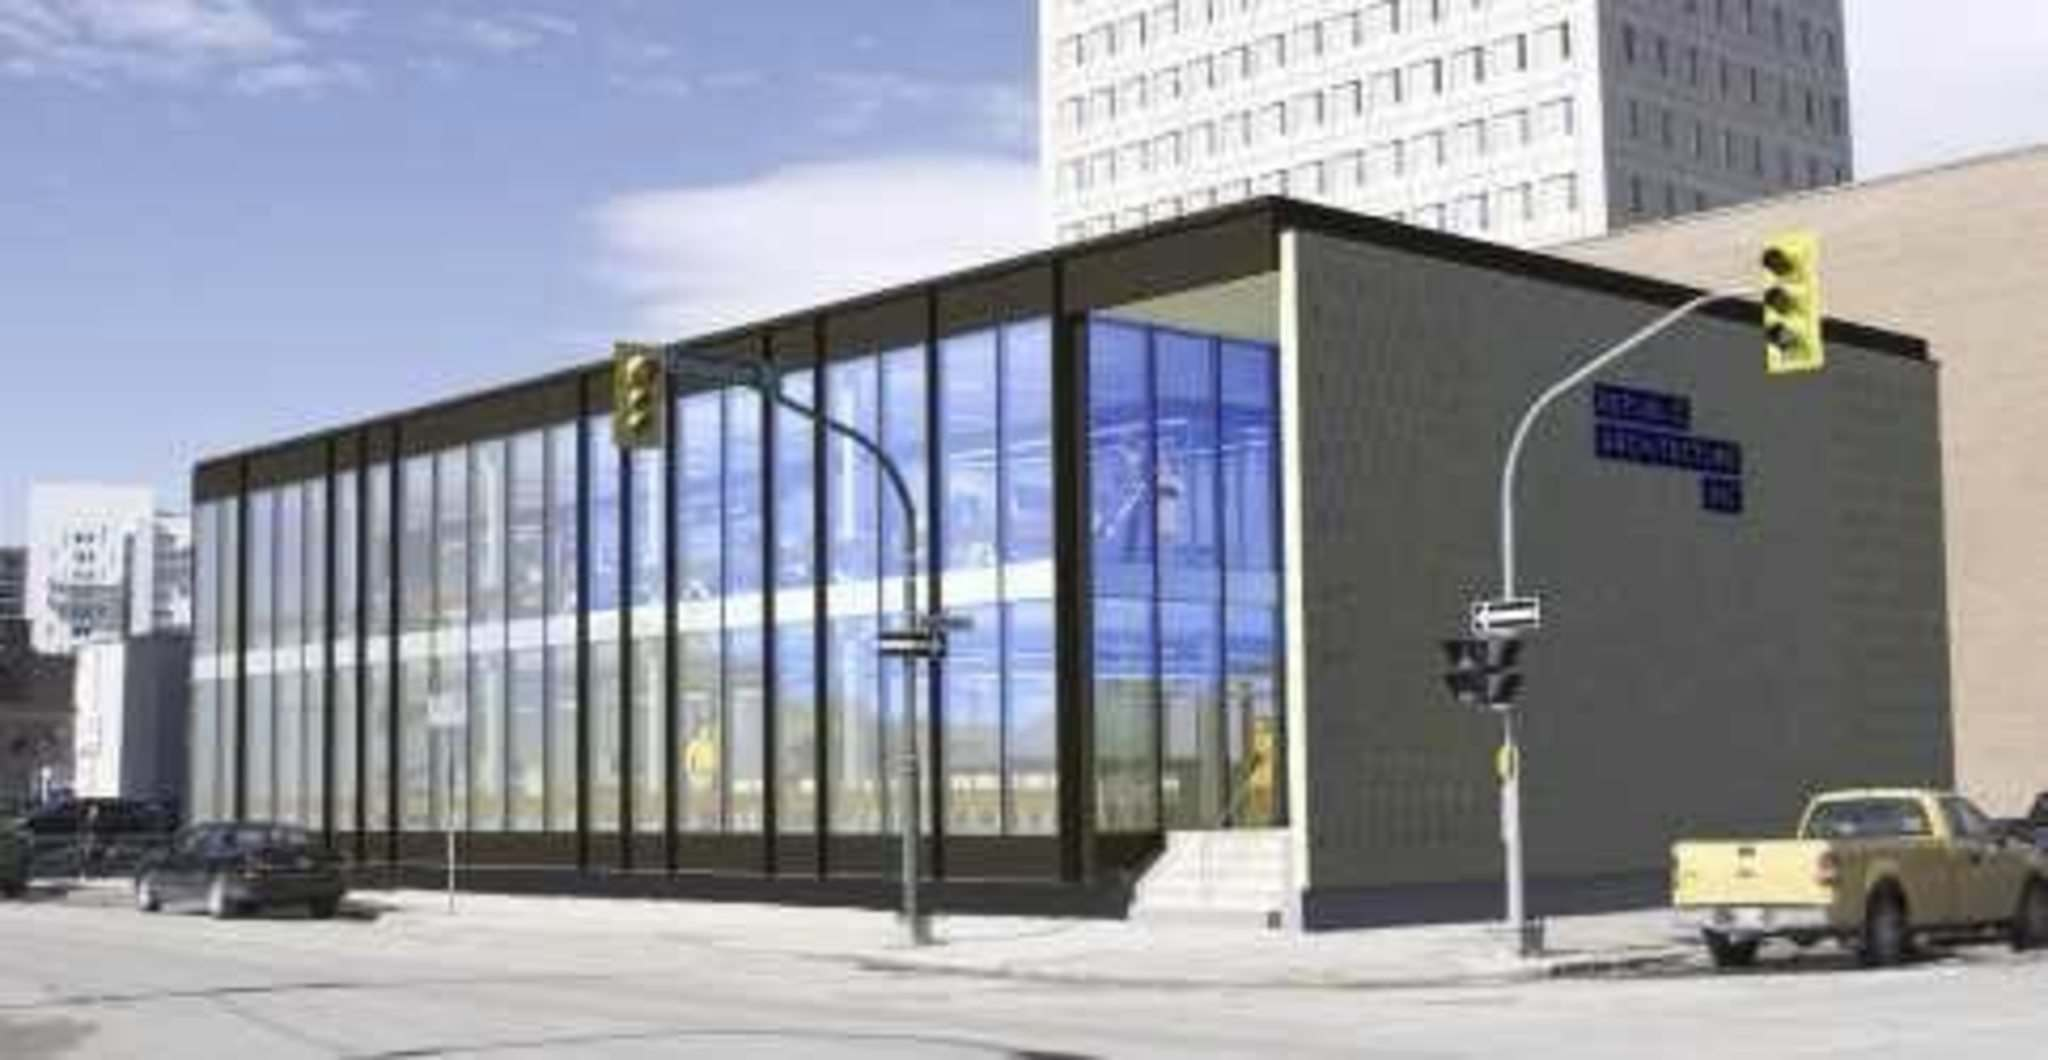 SuppLied</p><p>An artist's rendering of the structure, post-facelift. The building is considered a prime example of mid-century modernist architecture, and will be home to Republic Architecture Inc.</p></p>